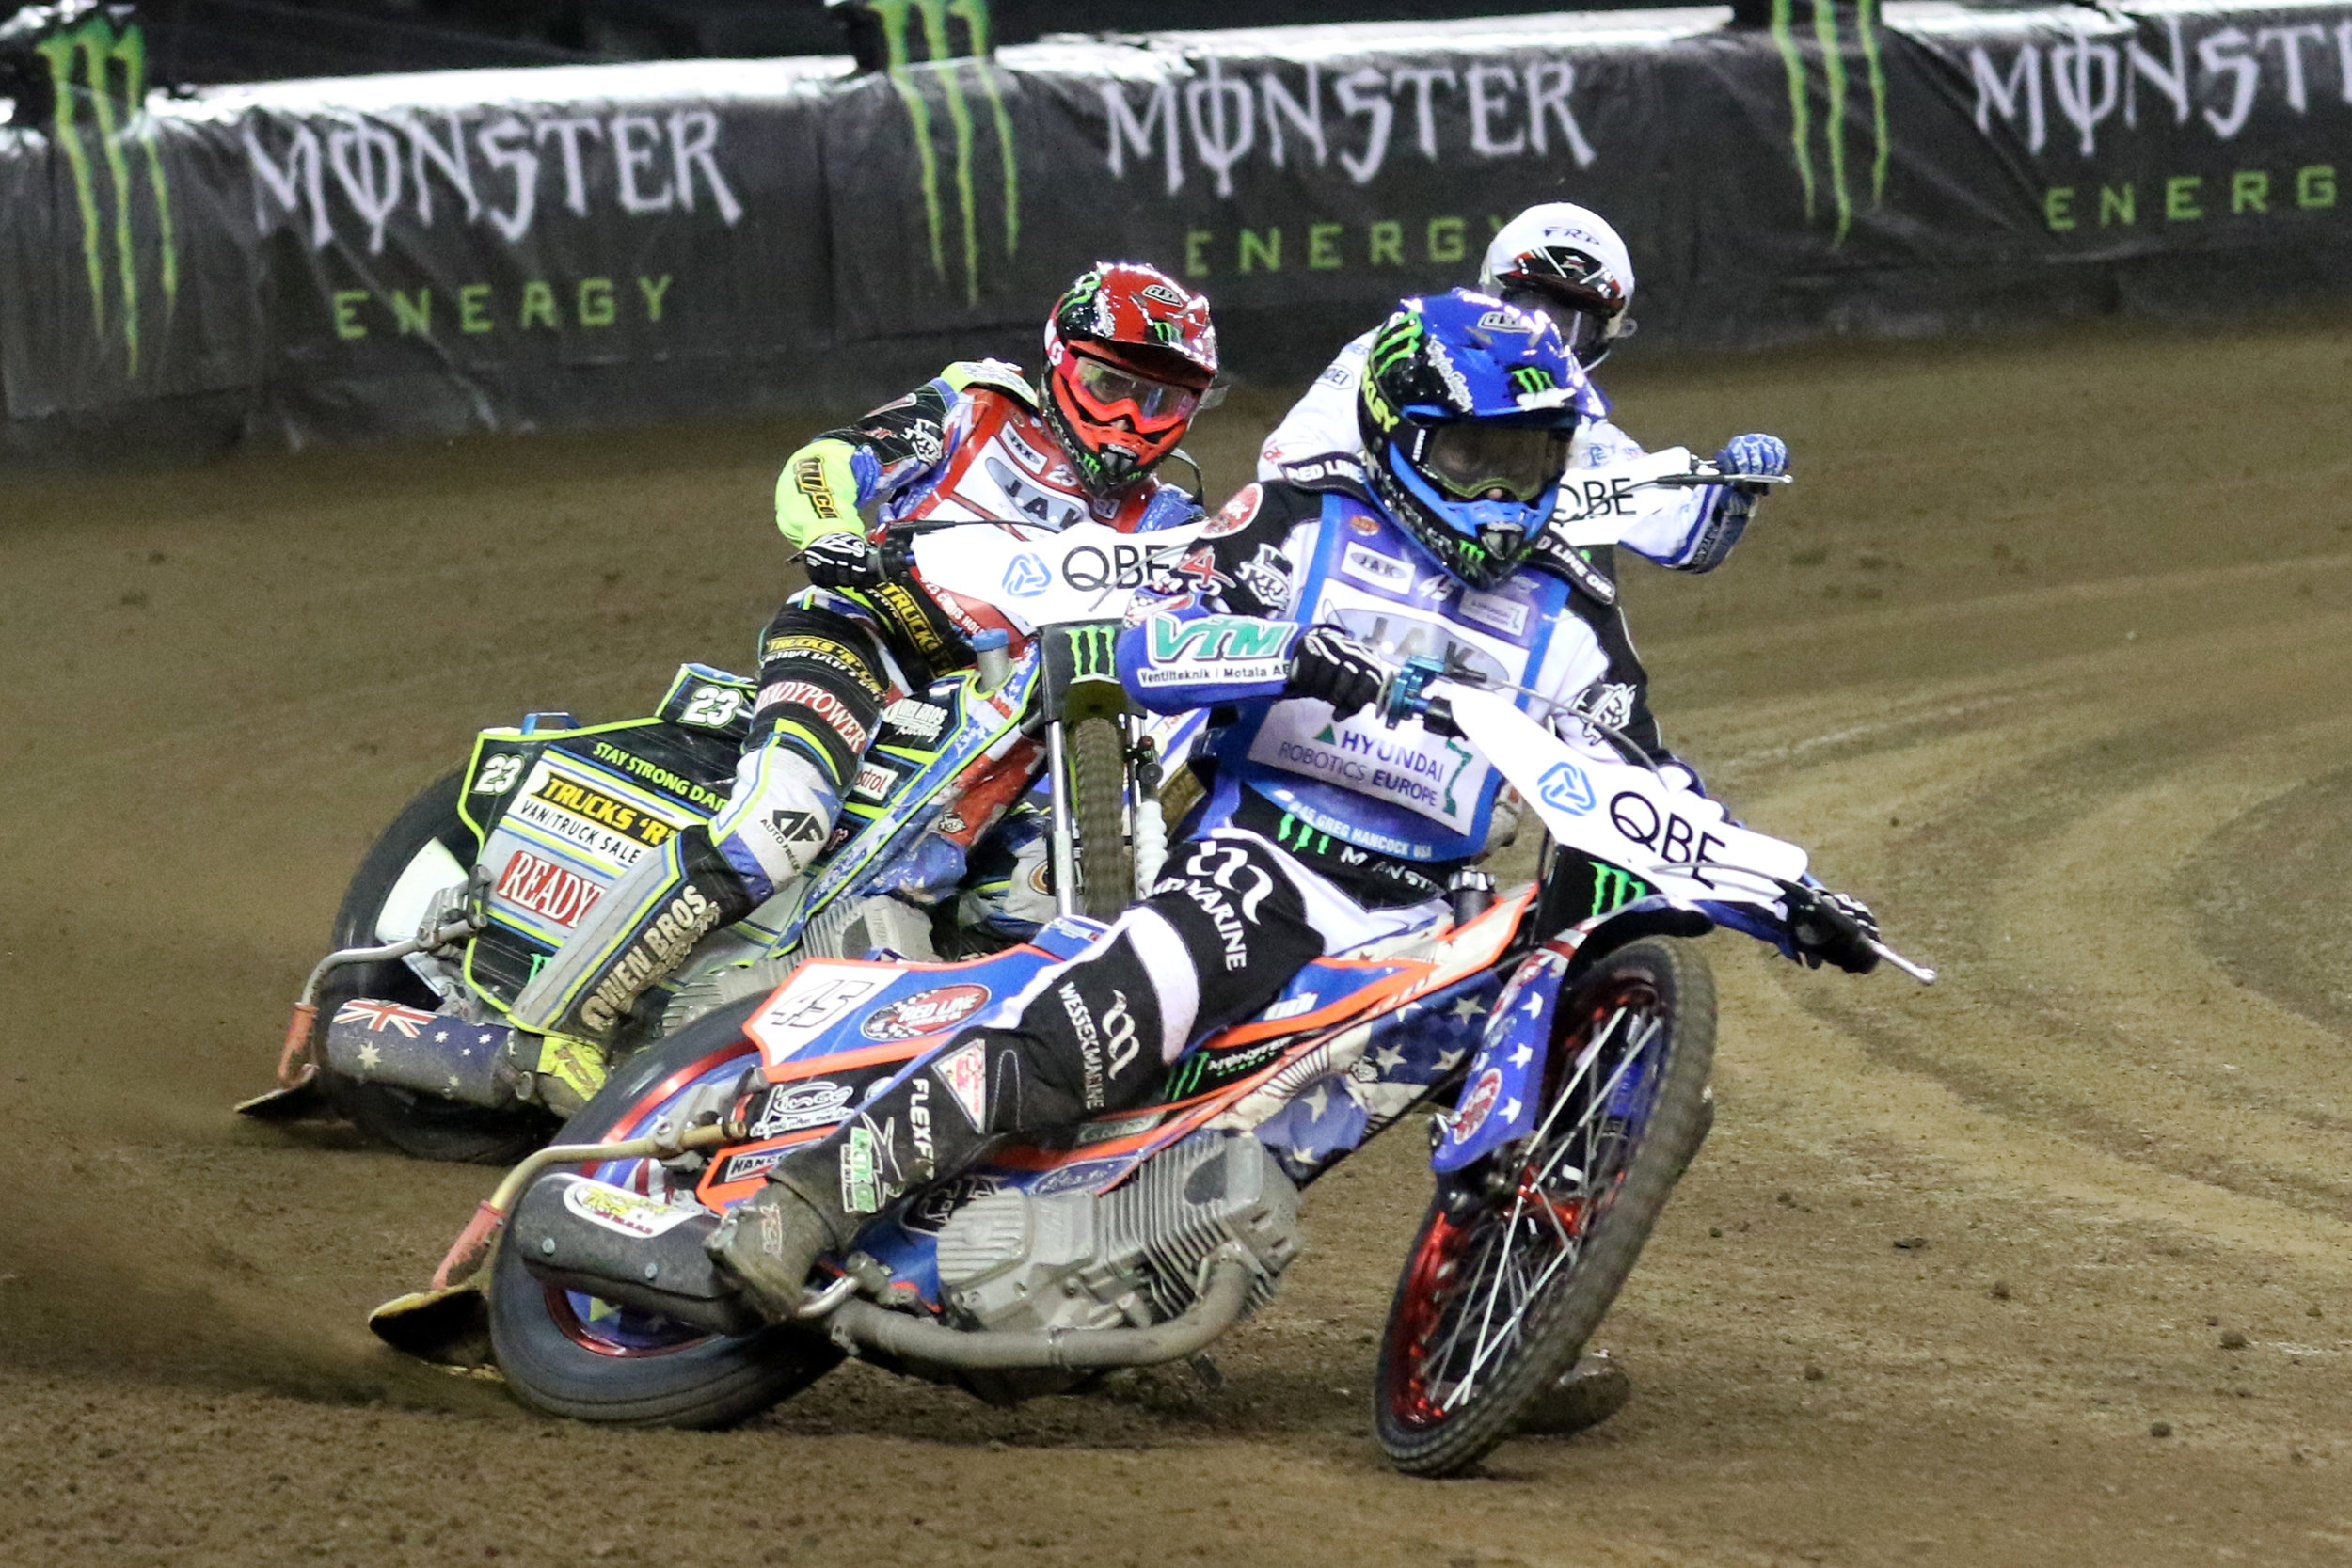 hancock-holder-zagar8458(c)SpeedwayGP.jpg